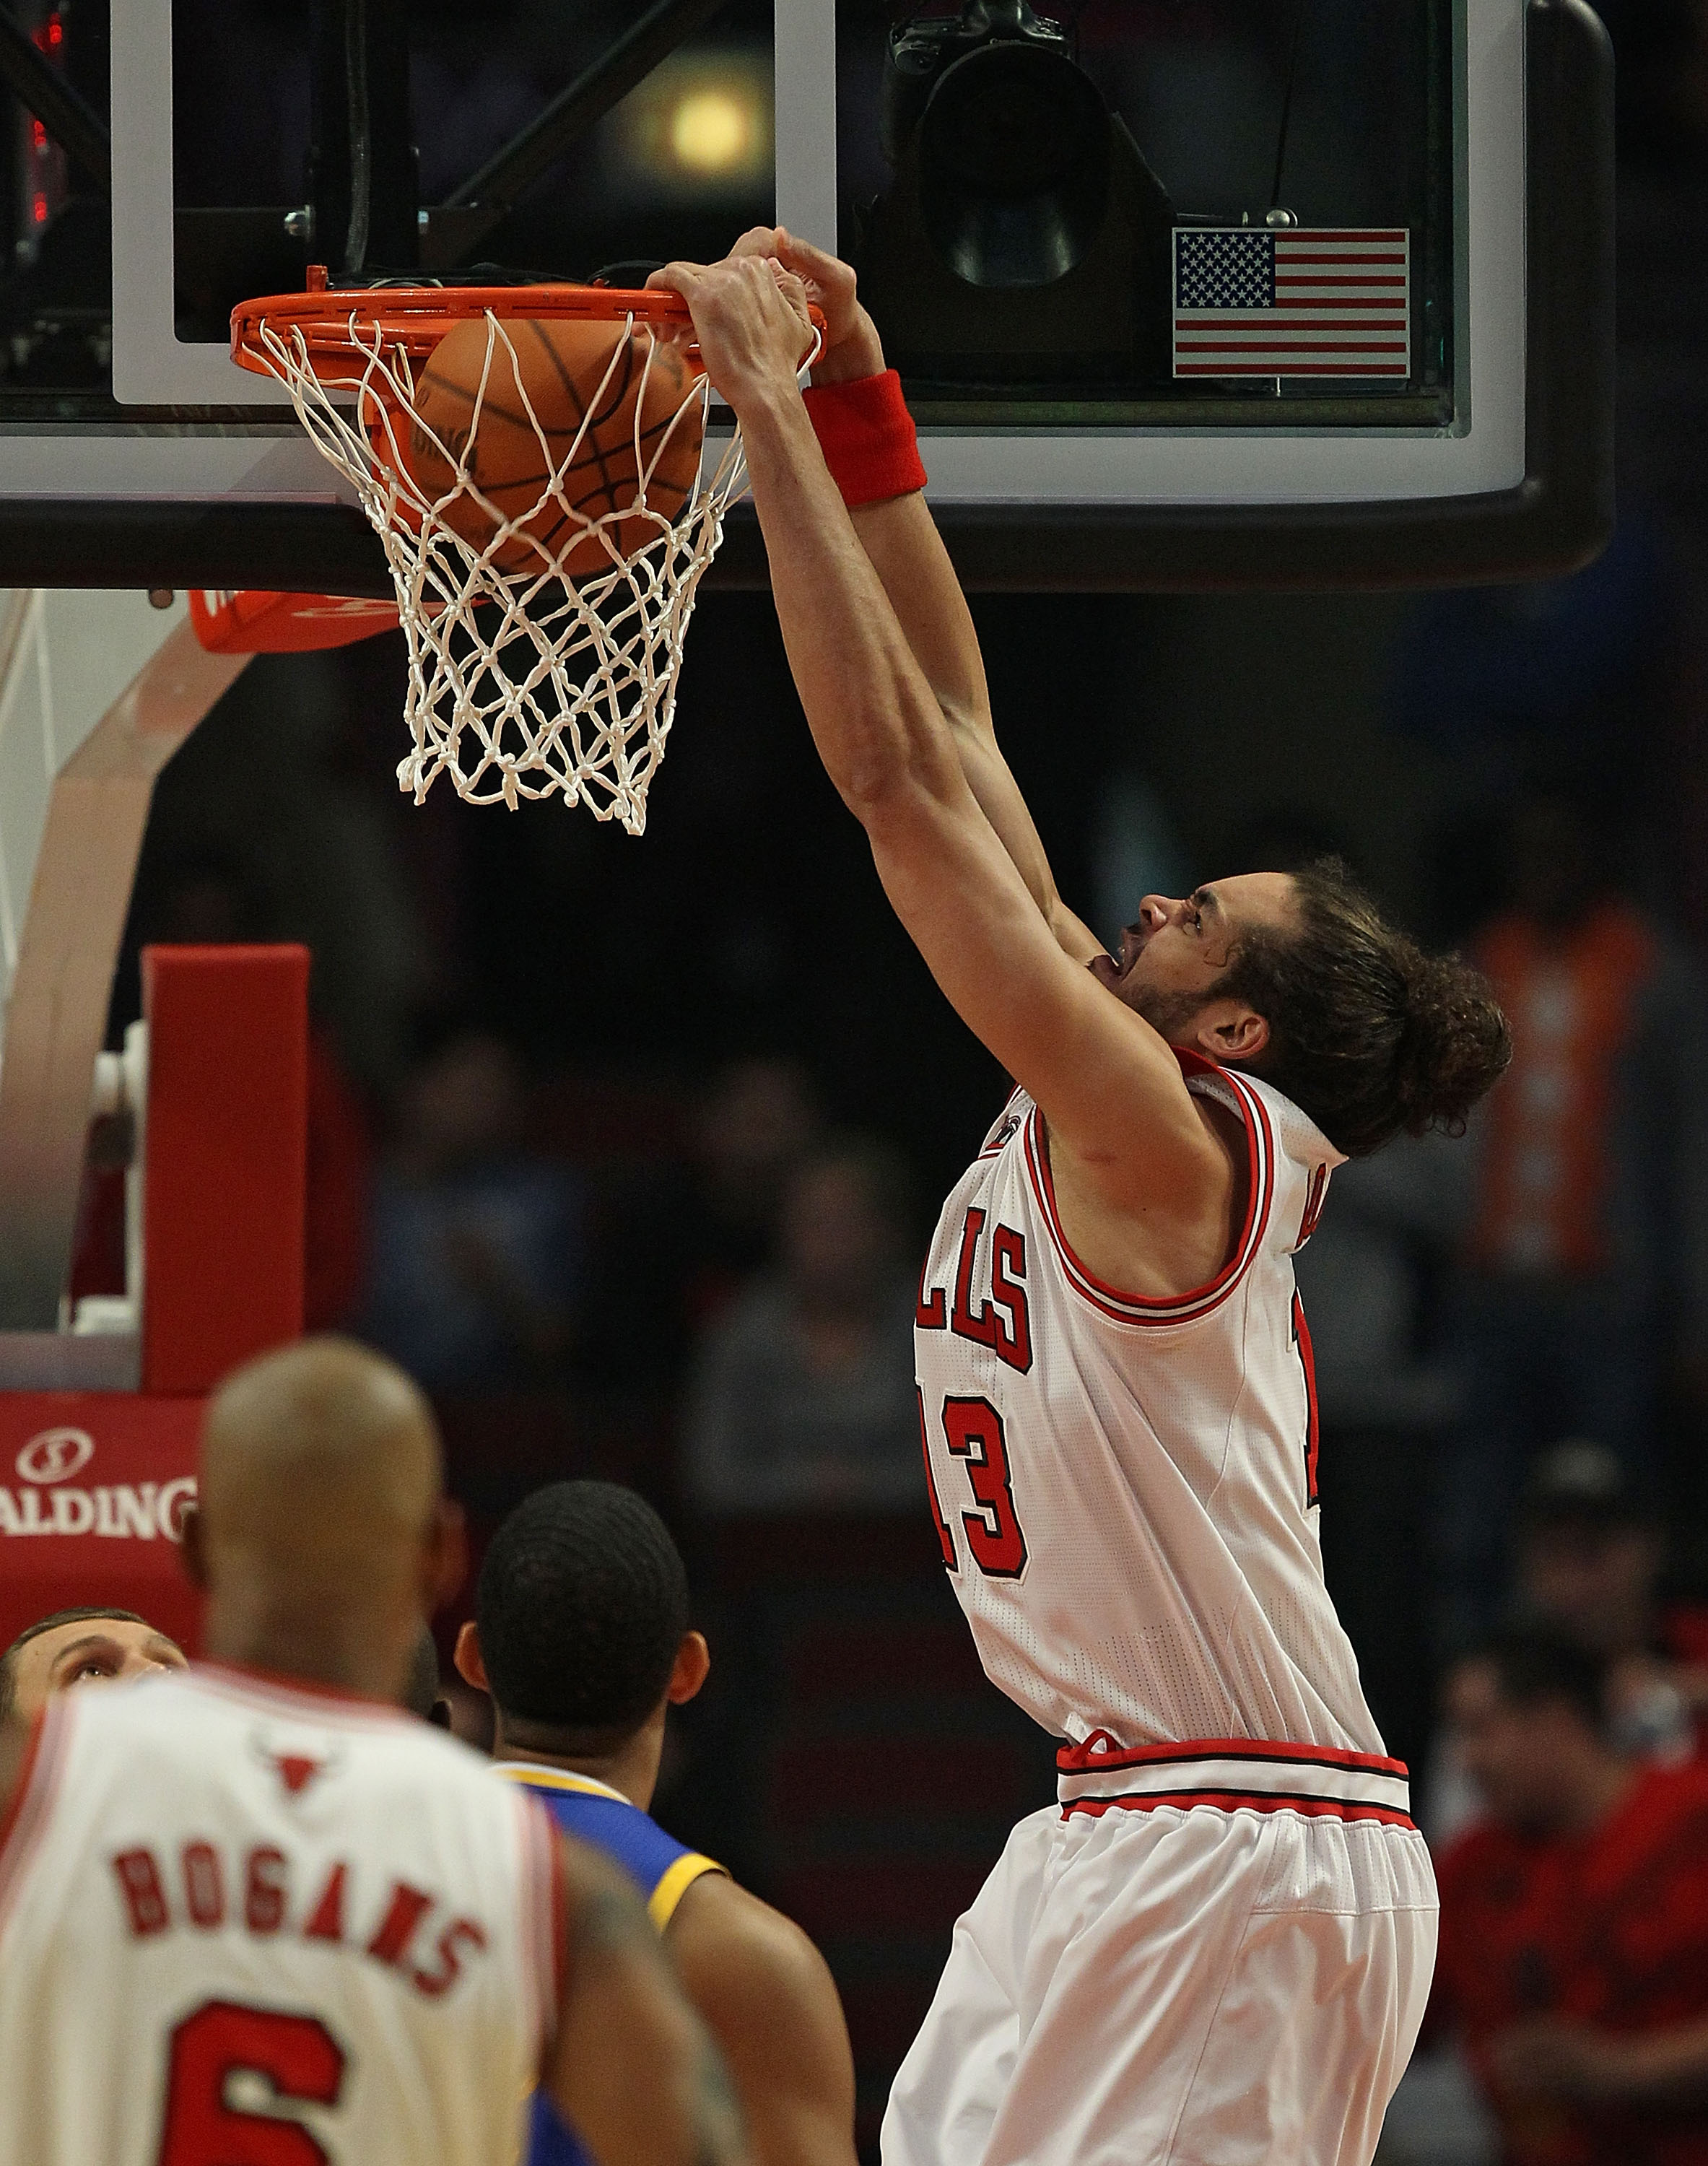 CHICAGO - NOVEMBER 11: Joakim Noah #13 of the Chicago Bulls dunks the ball against the Golden State Warriors at the United Center on November 11, 2010 in Chicago, Illinois. NOTE TO USER: User expressly acknowledges and agrees that, by downloading and/or u